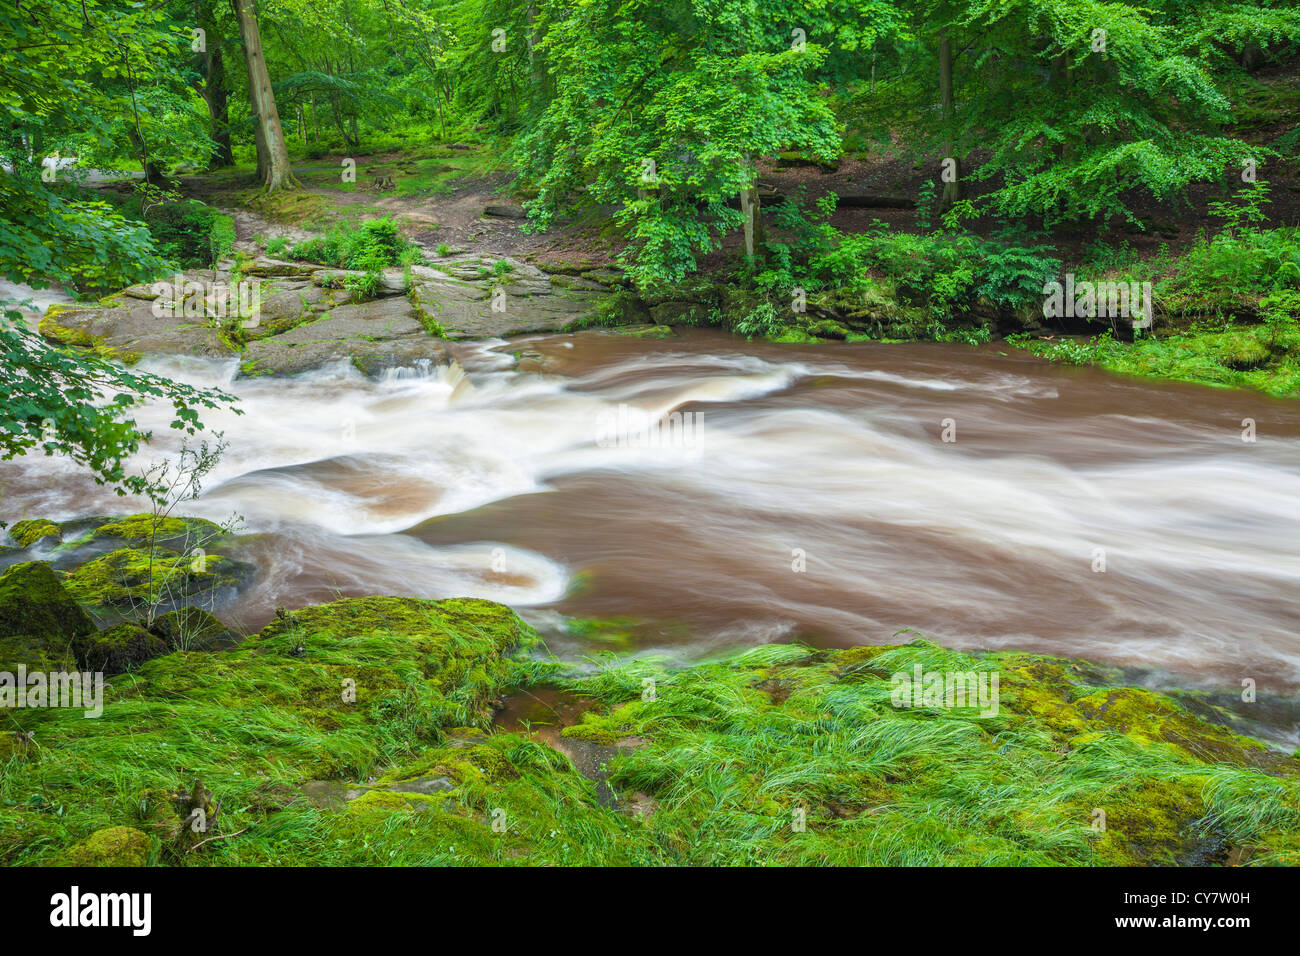 The river Wharf in spate at the Strid gorge near Bolton Abbey, North Yorkshire. - Stock Image